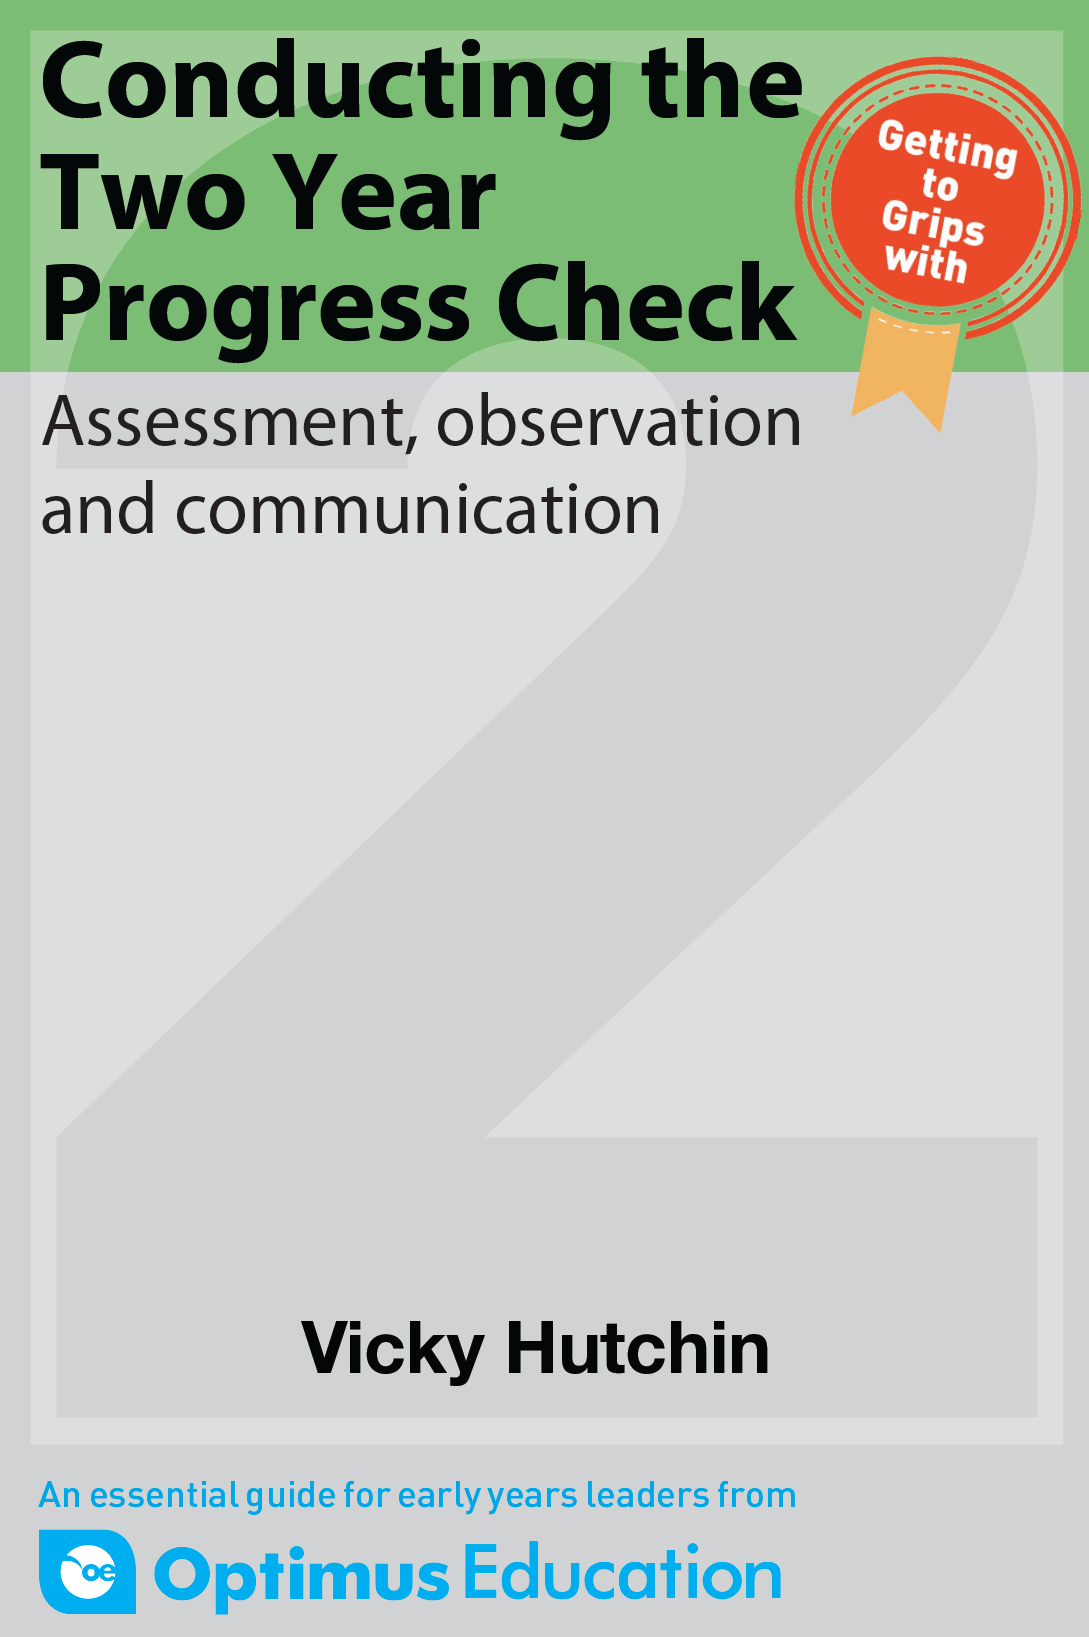 Conducting the Two Year Progress Check: Assessment, observation and communication